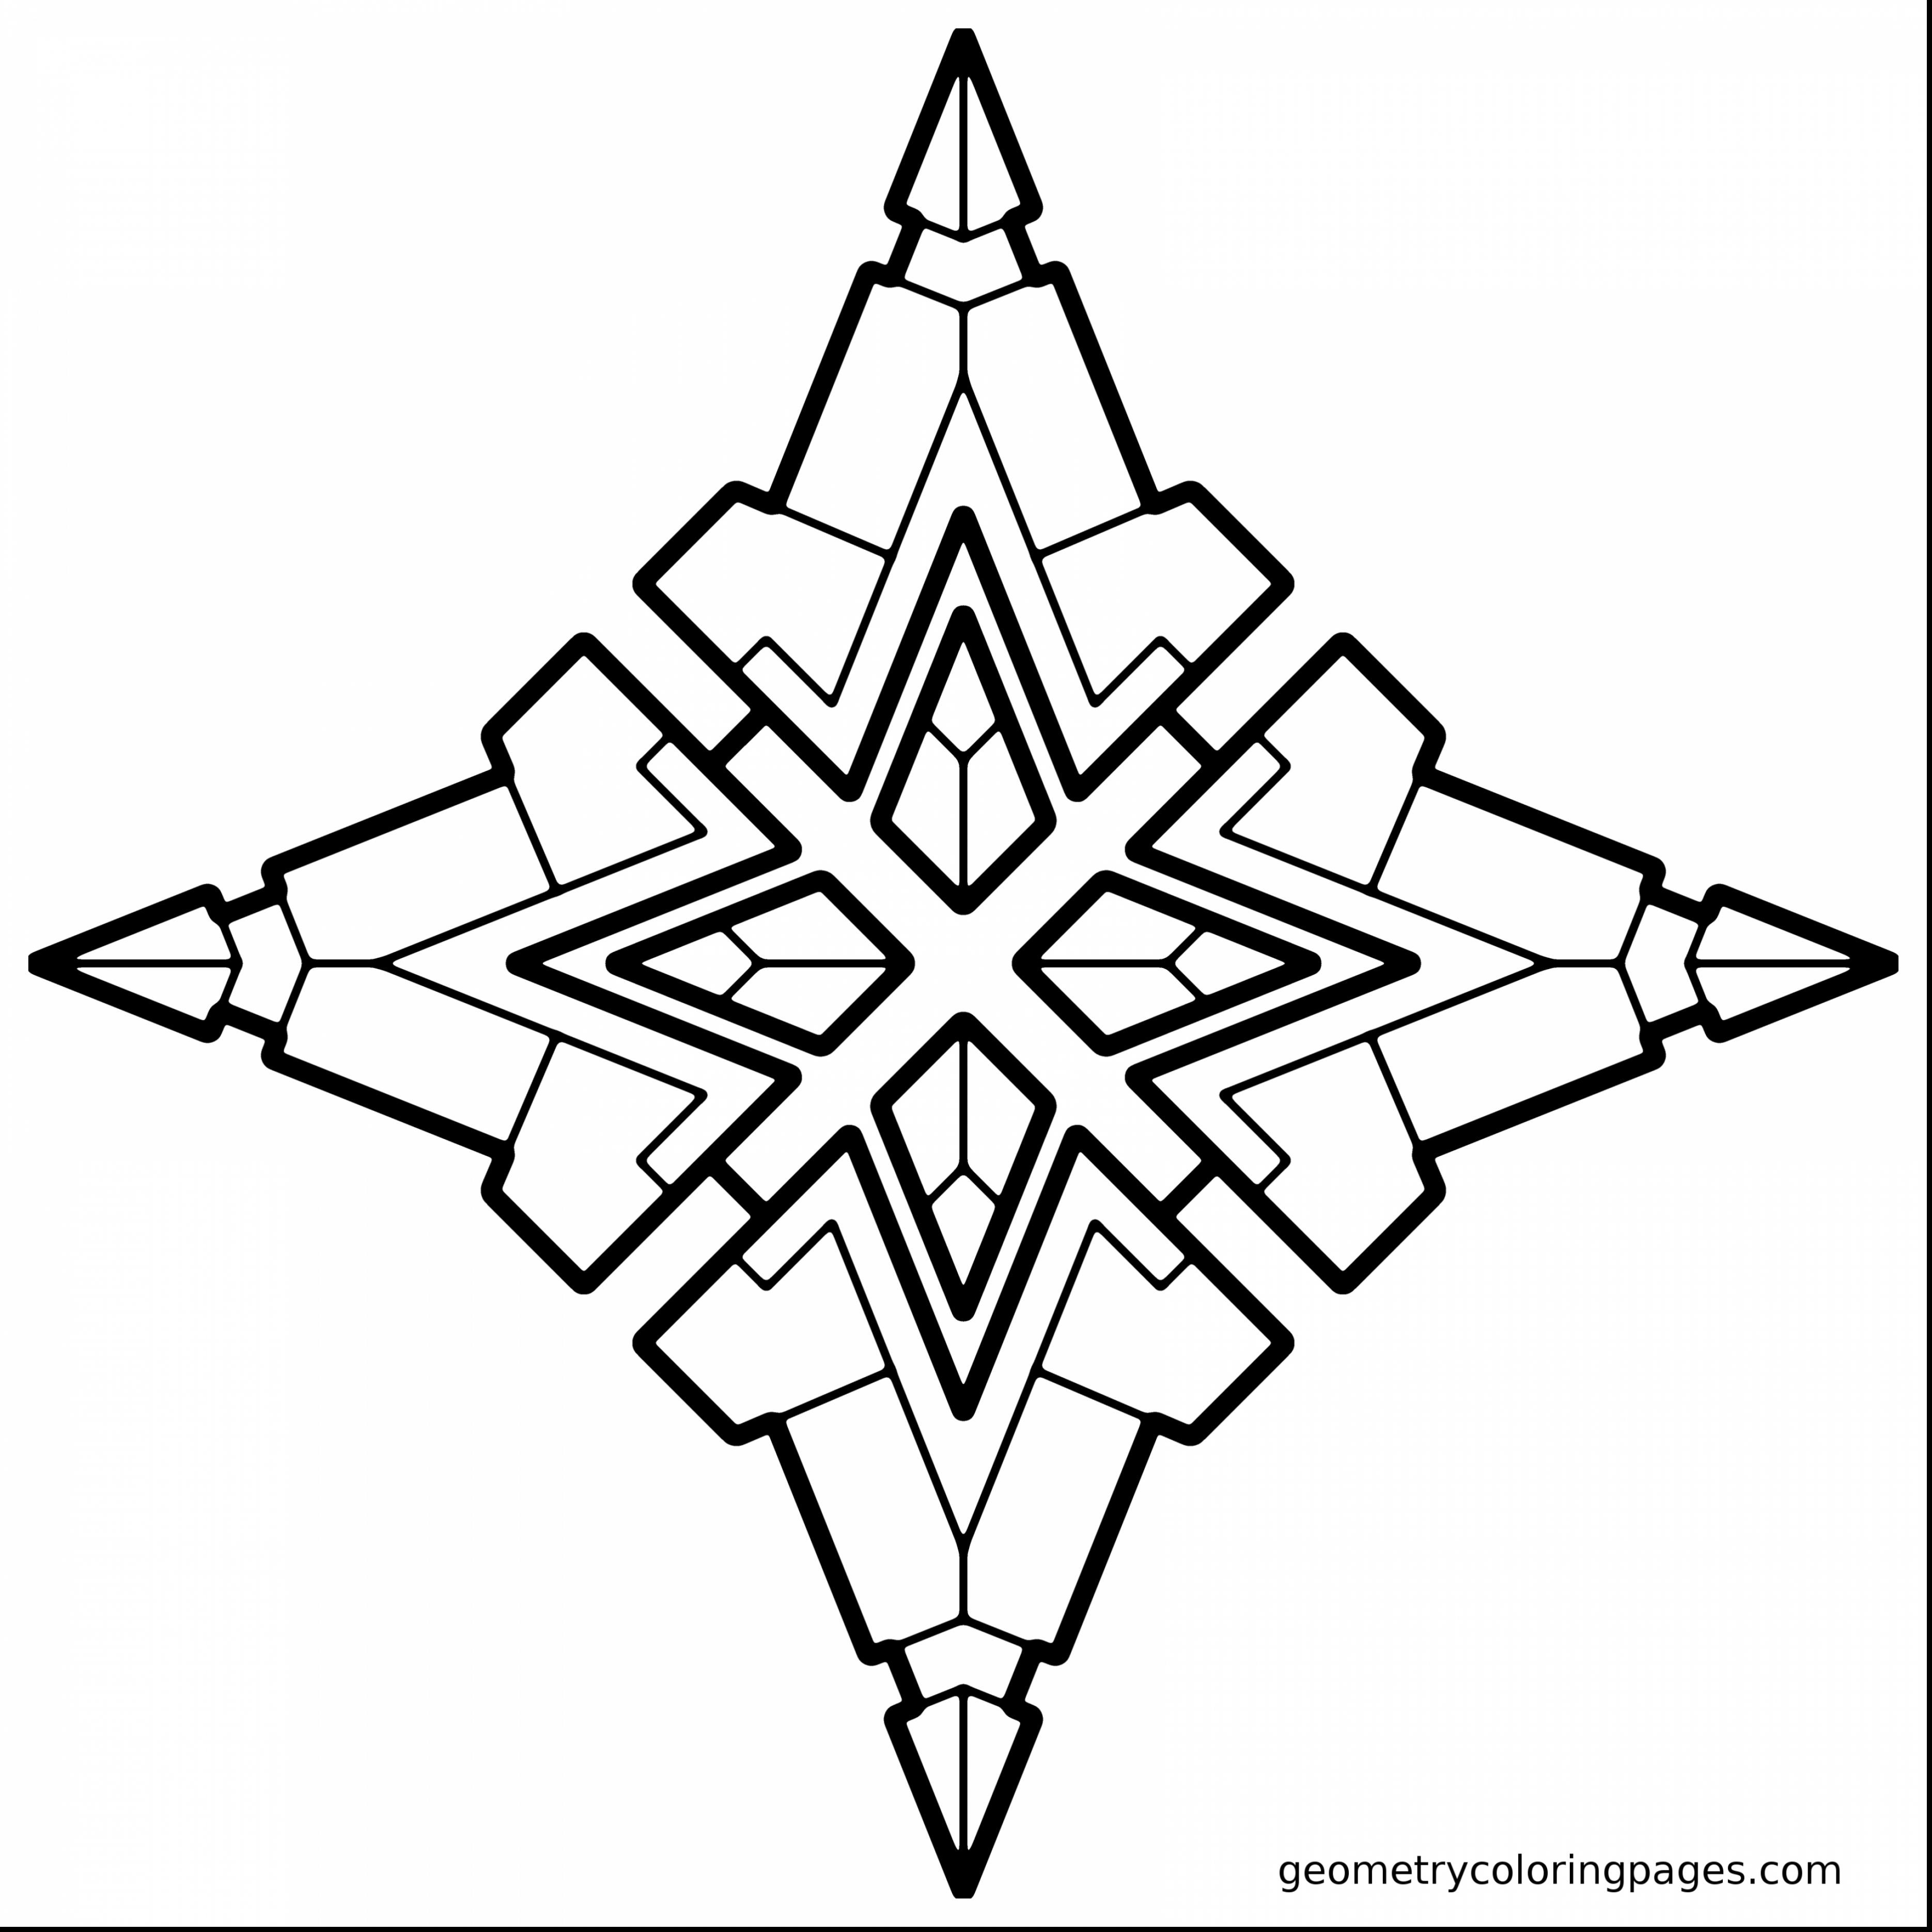 3d Geometric Coloring Pages At Getcolorings